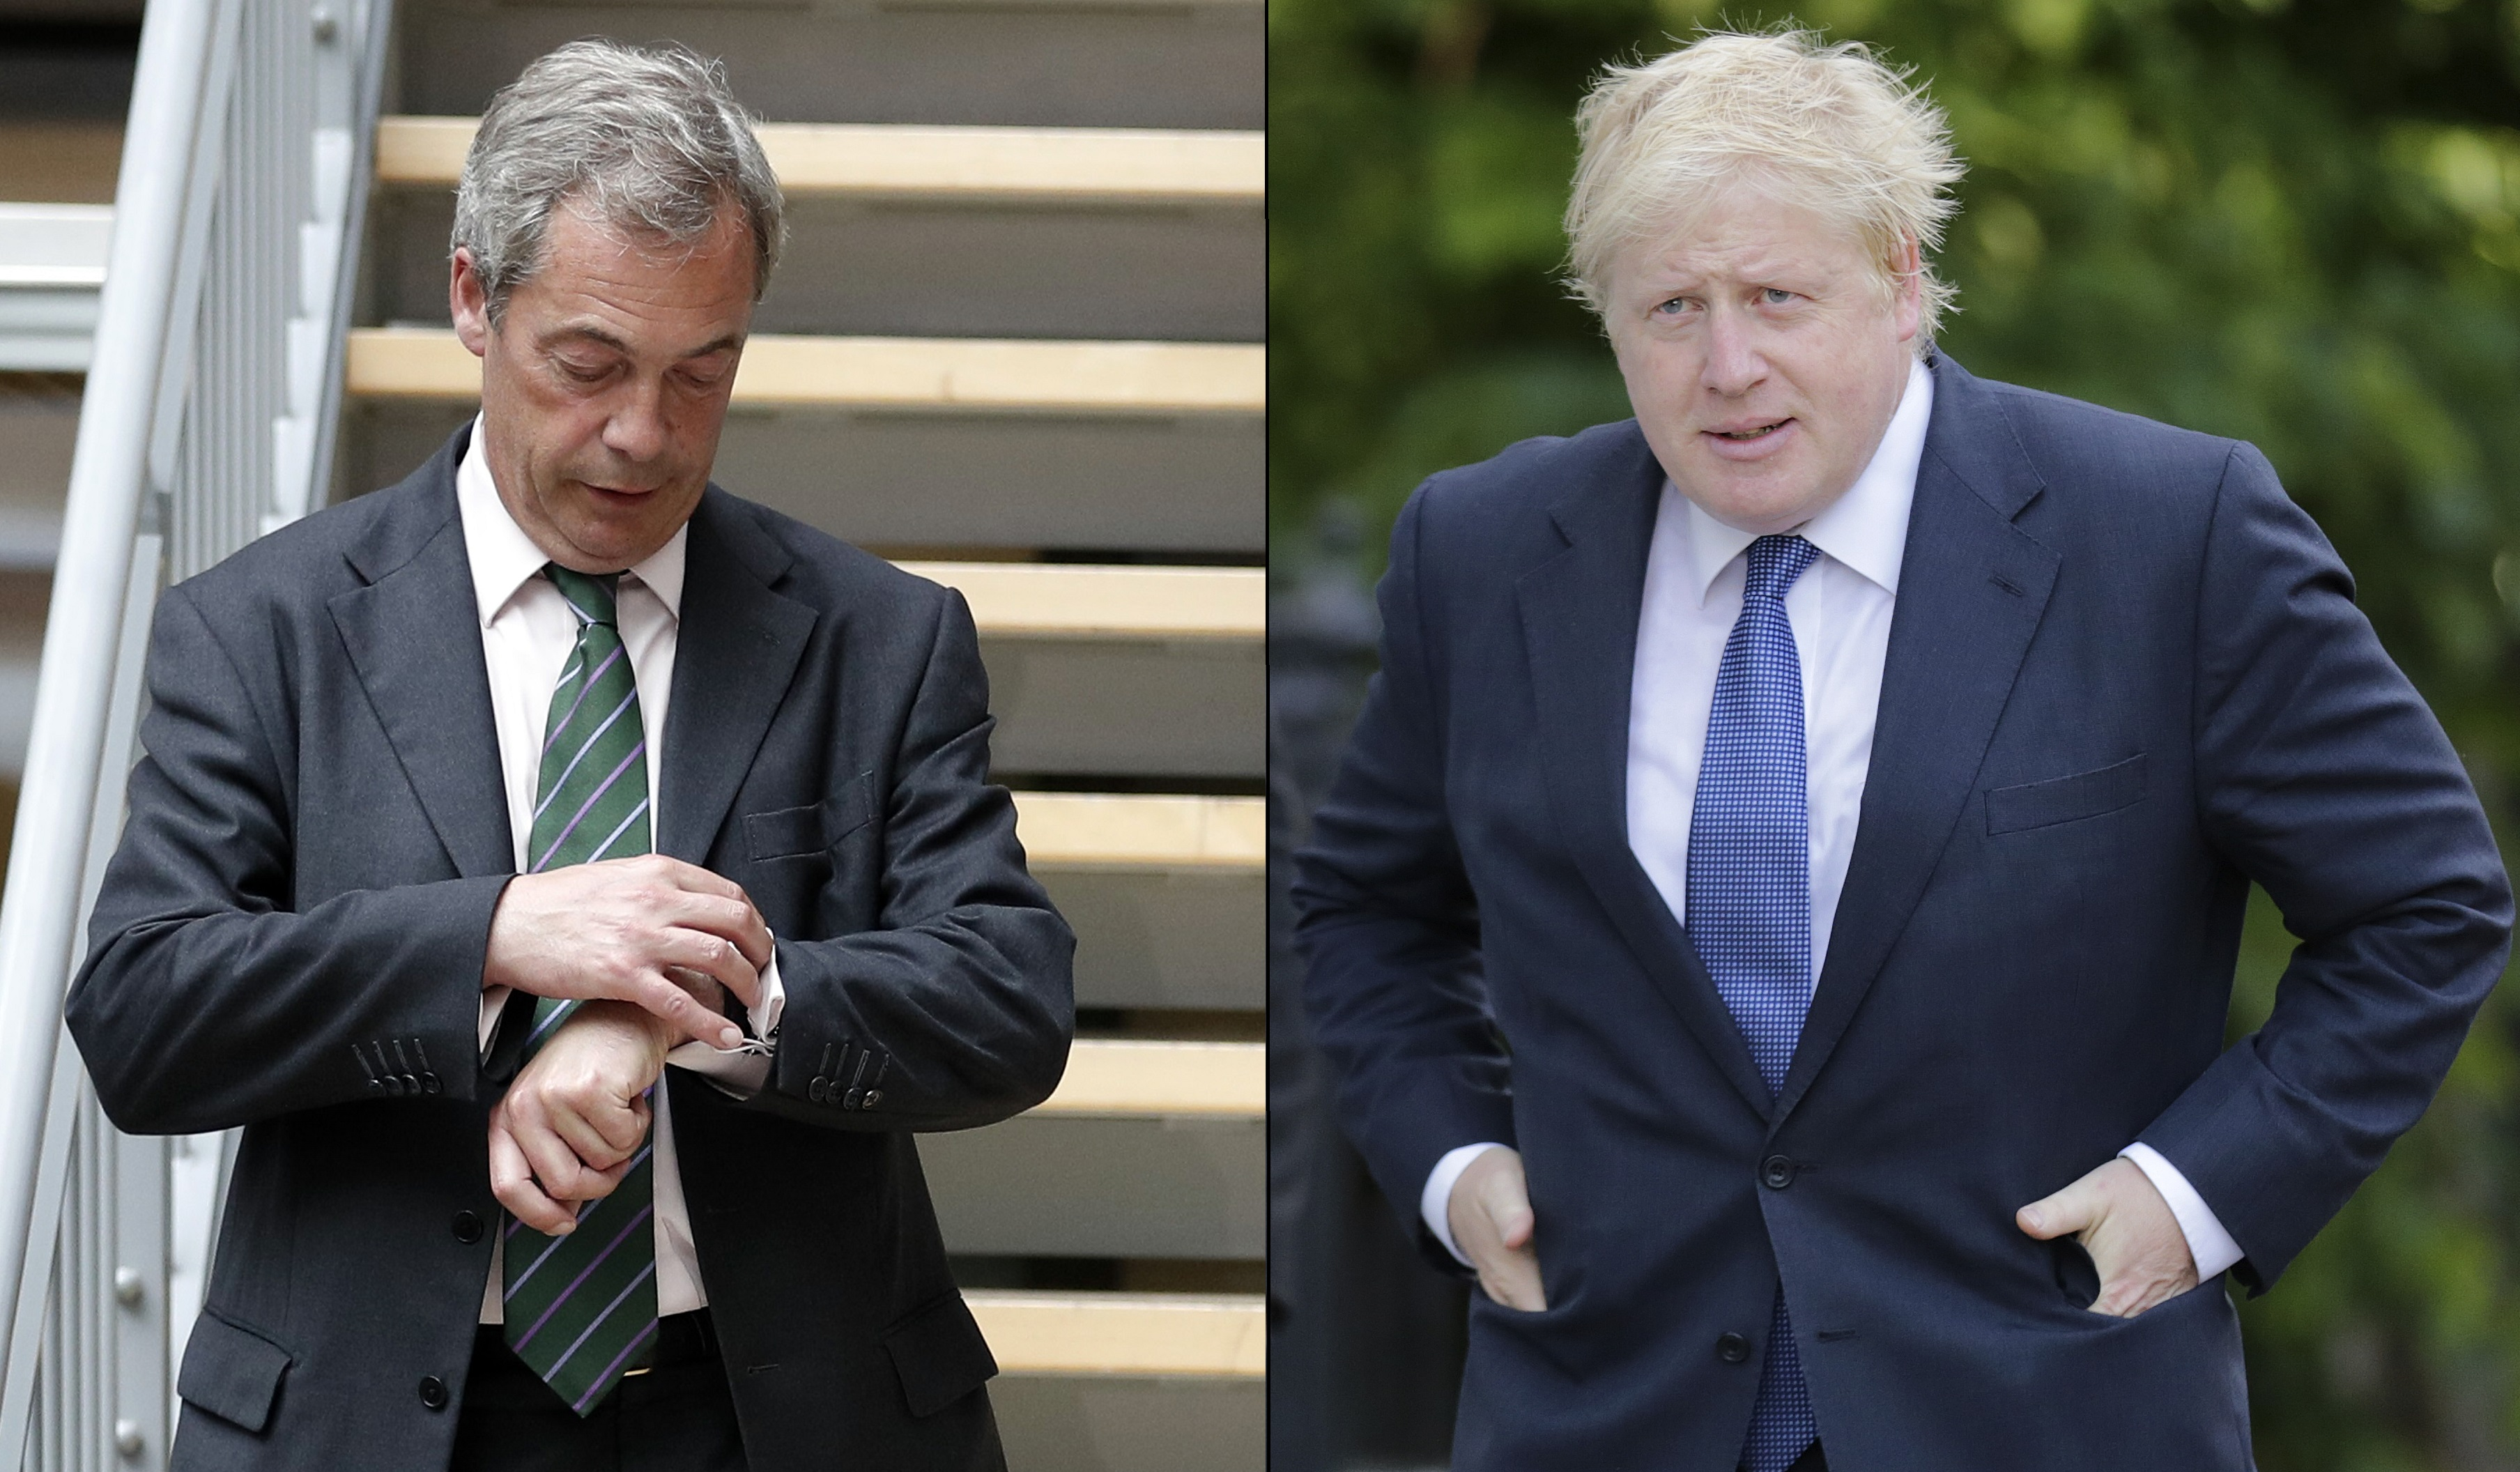 Nigel Farage (left) checks his watch during the first EU Summit in Brussels after the Brexit vote. Boris Johnson (right) leave his home in London. June 28, 2016.